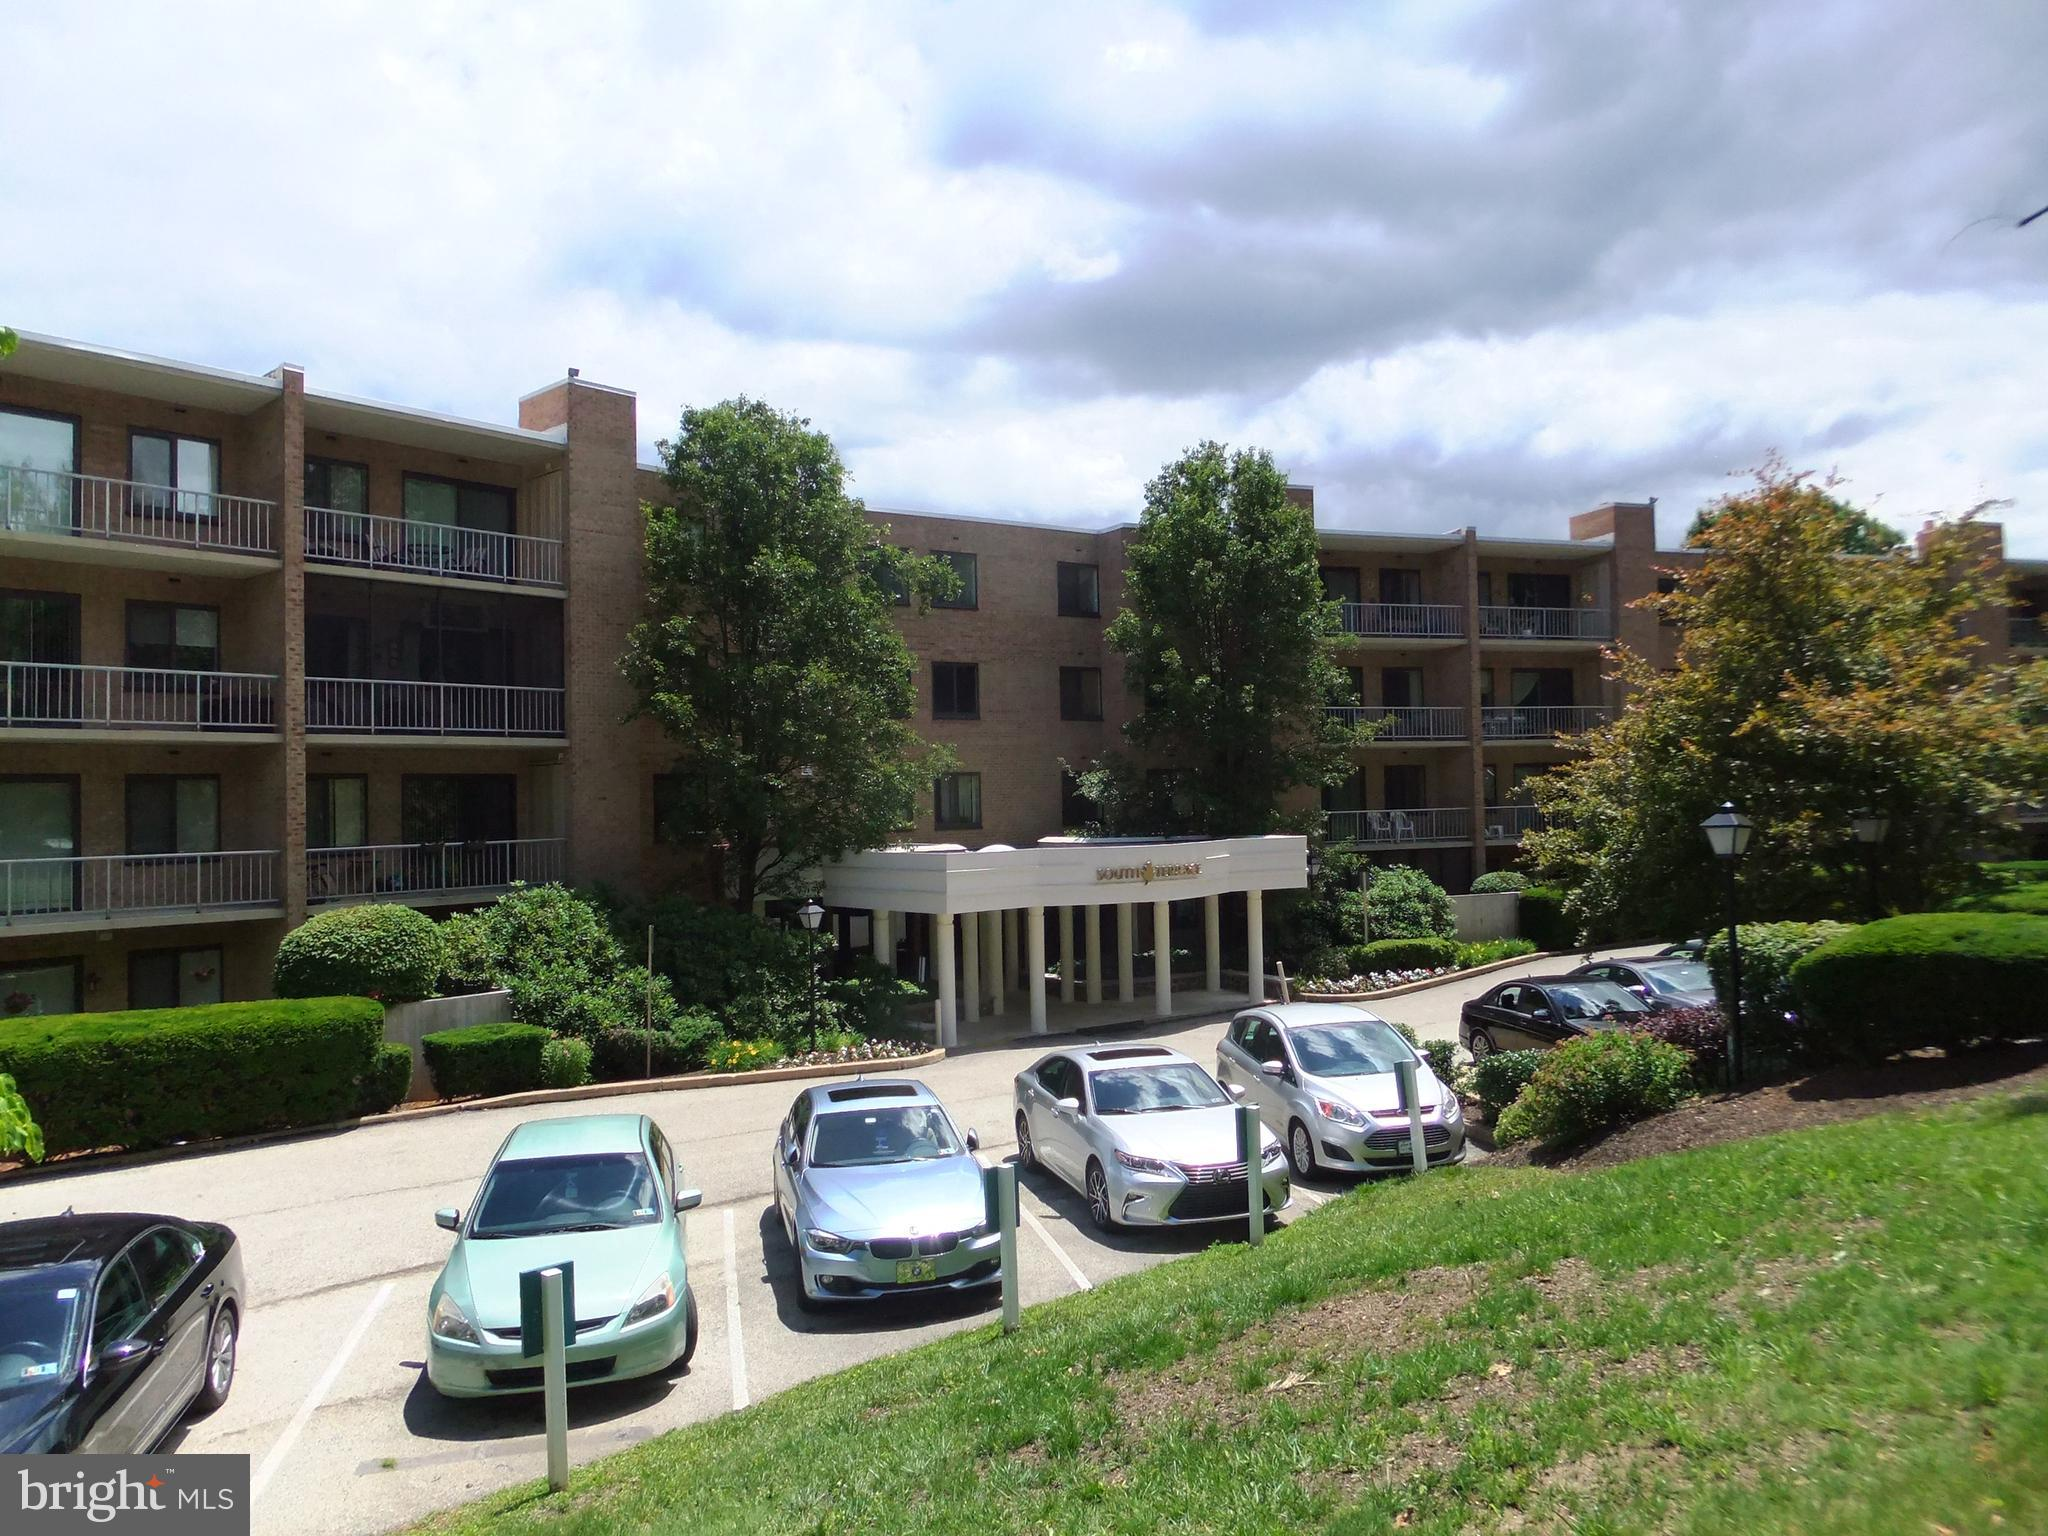 """JUST REDUCED!  AVAILABLE IMMEDIATELY!   Welcome to the South Terrace Building at """"Oak Hill Condominiums"""", Penn Valley, Pa.  This is a rarely available. expanded 1 bedroom 1  1 /2 bath home. This home is on the top (4th)  and just a few steps from the elevator. This home boasts hardwood floor in dining room and wall to wall carpets  and great closet space. There is a coat closet in the stone tiled foyer. The large living and dining areas overlook the large sunny balcony. The home features  designer window treatments and recessed lighting.  Laundry closet with  washer/dryer. Also a utility closet. The home features  a large bedroom suite, bath with shower over tub. and a dressing room area off the bedroom and bath.  Ceiling fan. The dressing room area boasts 2 closets . The home also features  a hall  half bath. Large, Kitchen features lots of cabinets, newer range, dishwasher, pantry, refrigerator, tile floor and more. Condo monthly includes, hot and cold water, sewer, trash and snow removal, exterior maintenance and common area insurance. landscaping and parking. 2 small pets permitted up to 25 pounds, balcony electric grills are permitted. Pool, tennis, pickle ball, basketball, and gym available. Club house facility available for rental. 2 months condo contribution at closing. Great Lower Merion Township Schools, bus at front door. Minutes to center city via Public transportation, #44 bus at front door. xways and nearby train. Convenient to Suburban Square, lots of shopping and restaurants all nearby. Move in ready!"""